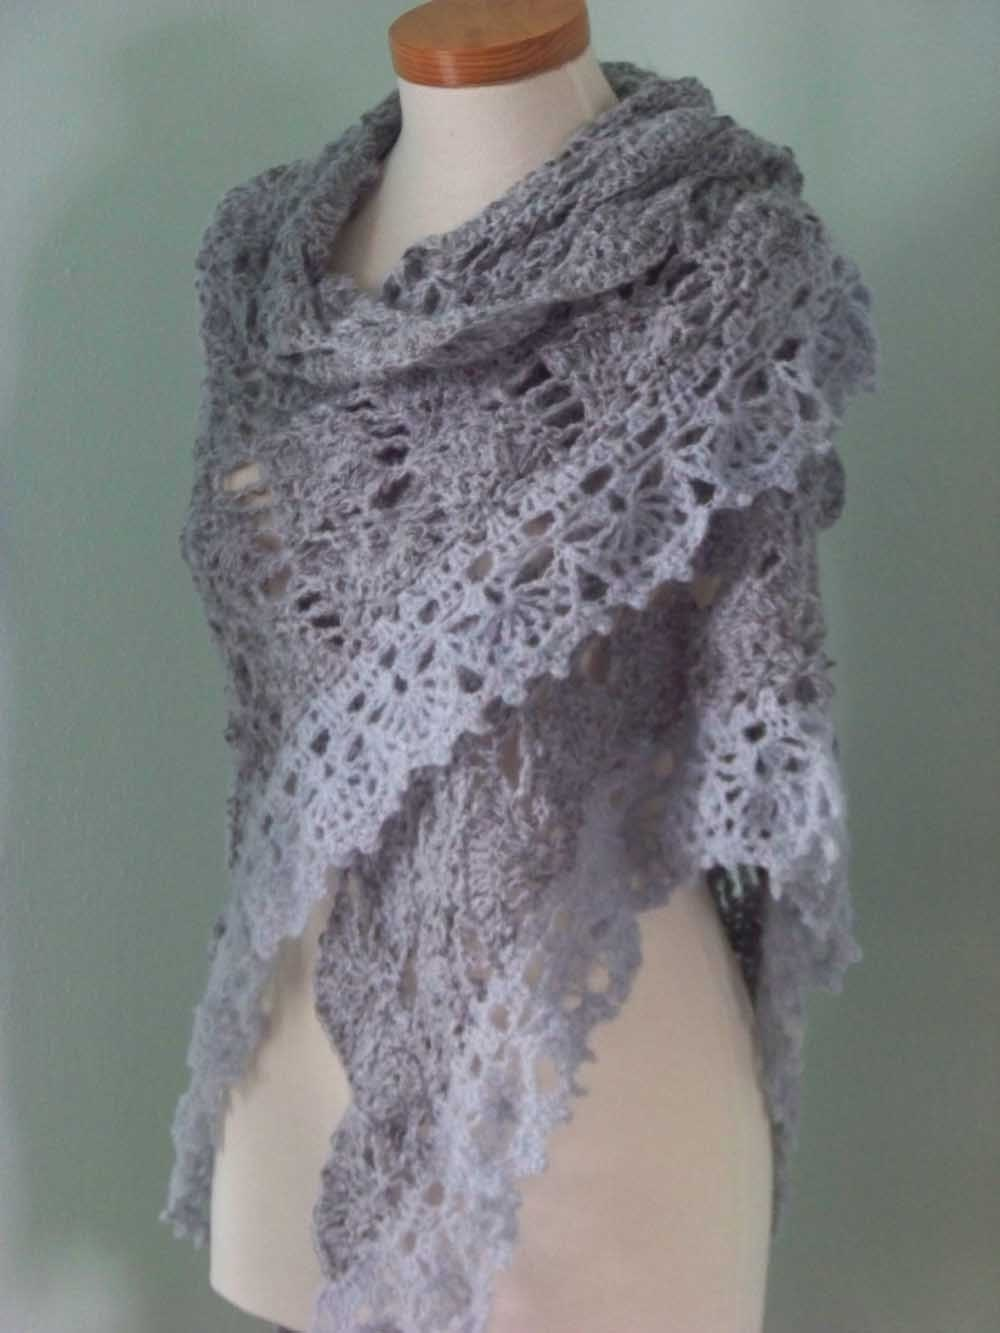 Crochet Patterns Shawl : CROCHET FREE LACY PATTERN SHAWL - Crochet Club